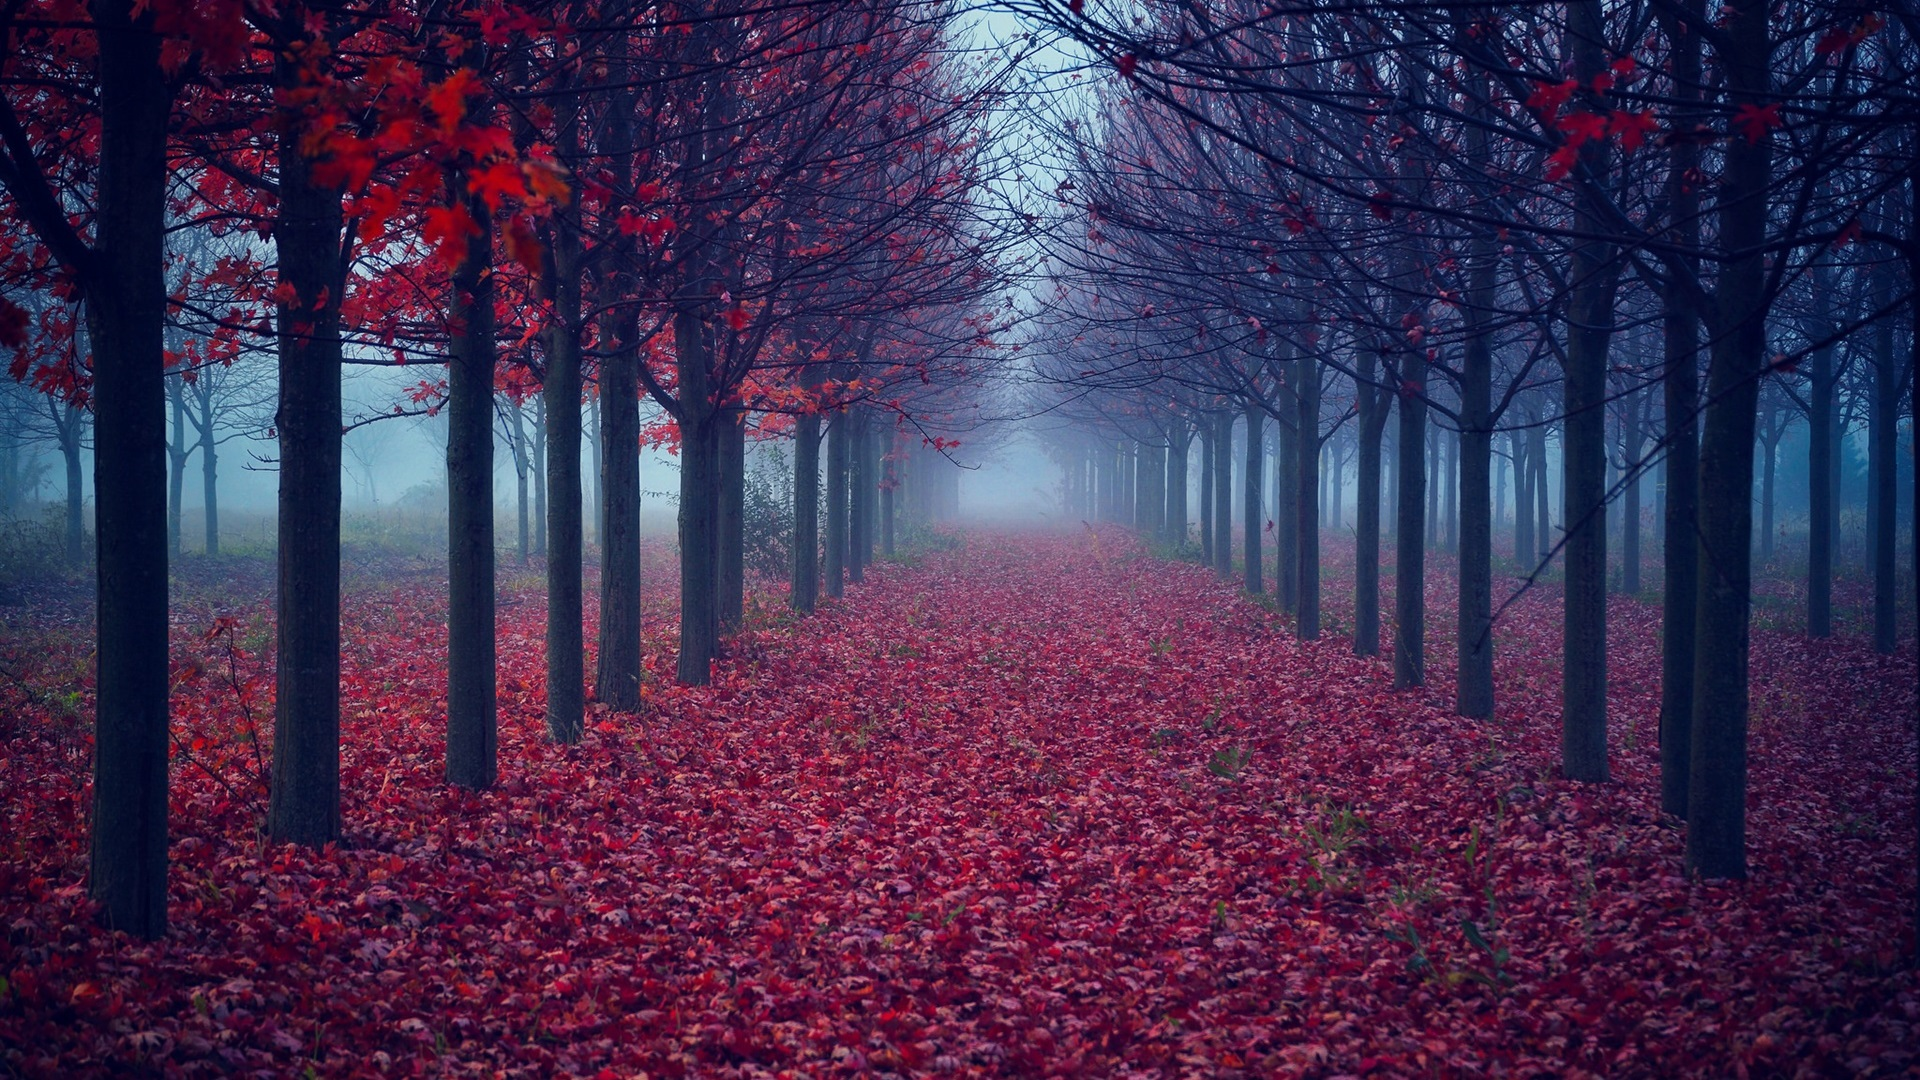 Fall Leaves Pathway Computer Wallpaper Wallpaper Trees Red Leaves Road Fog Autumn 1920x1200